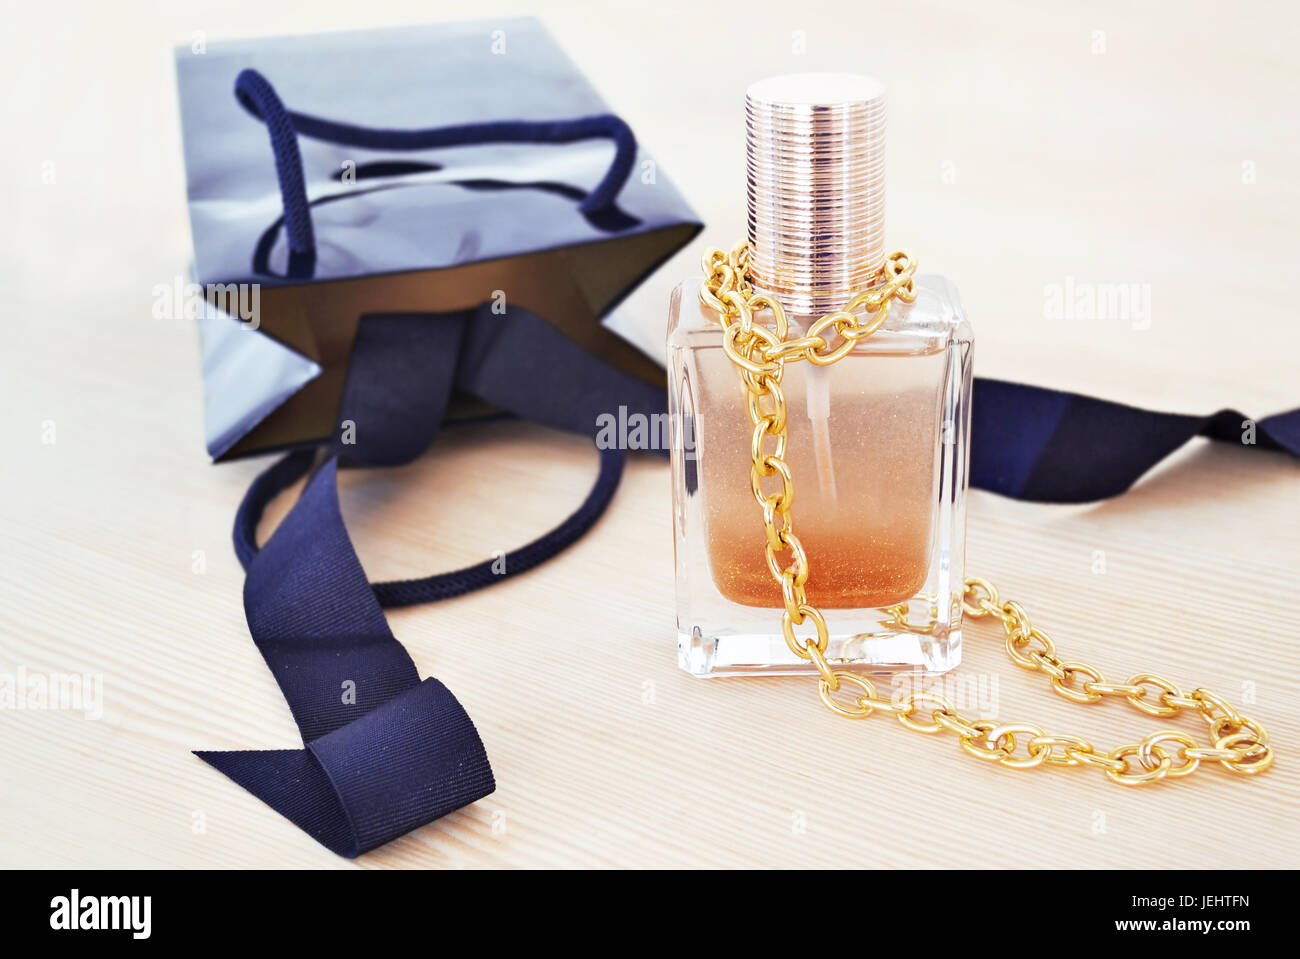 women accessories advertisement - cosmetics and jewelry - Stock Image